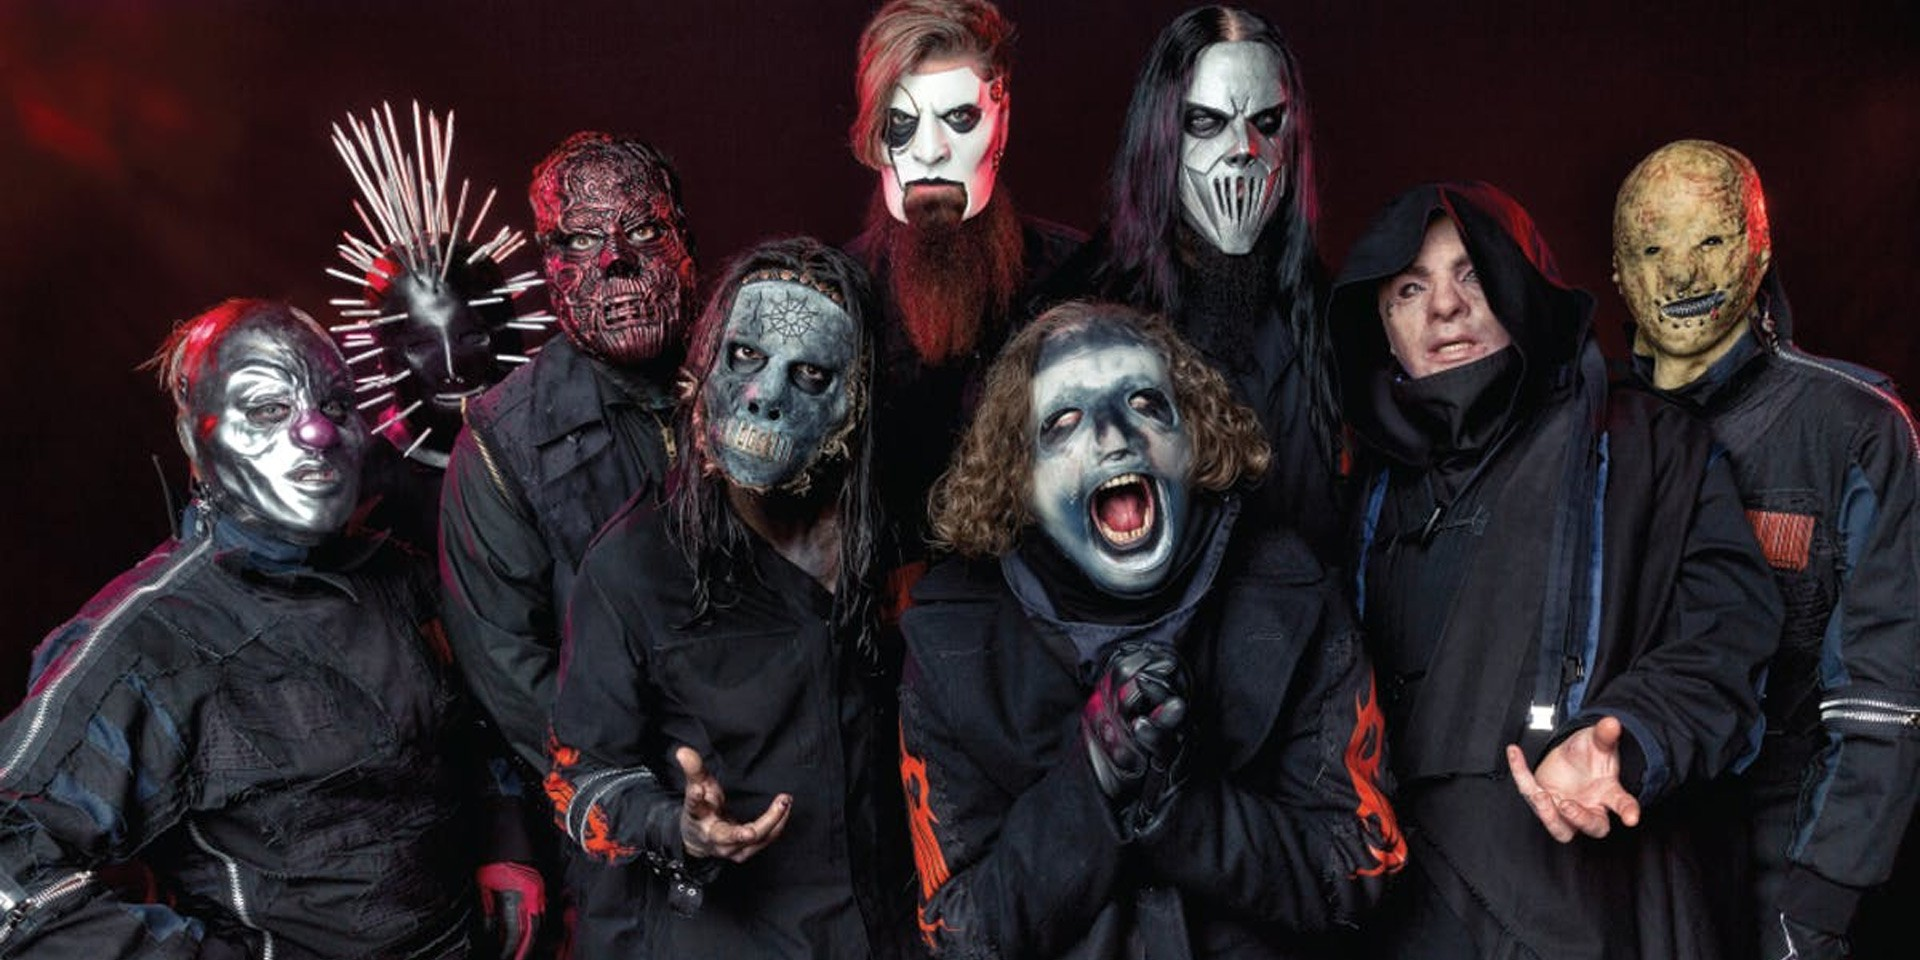 Tickets to Slipknot's Manila 2020 concert are available now